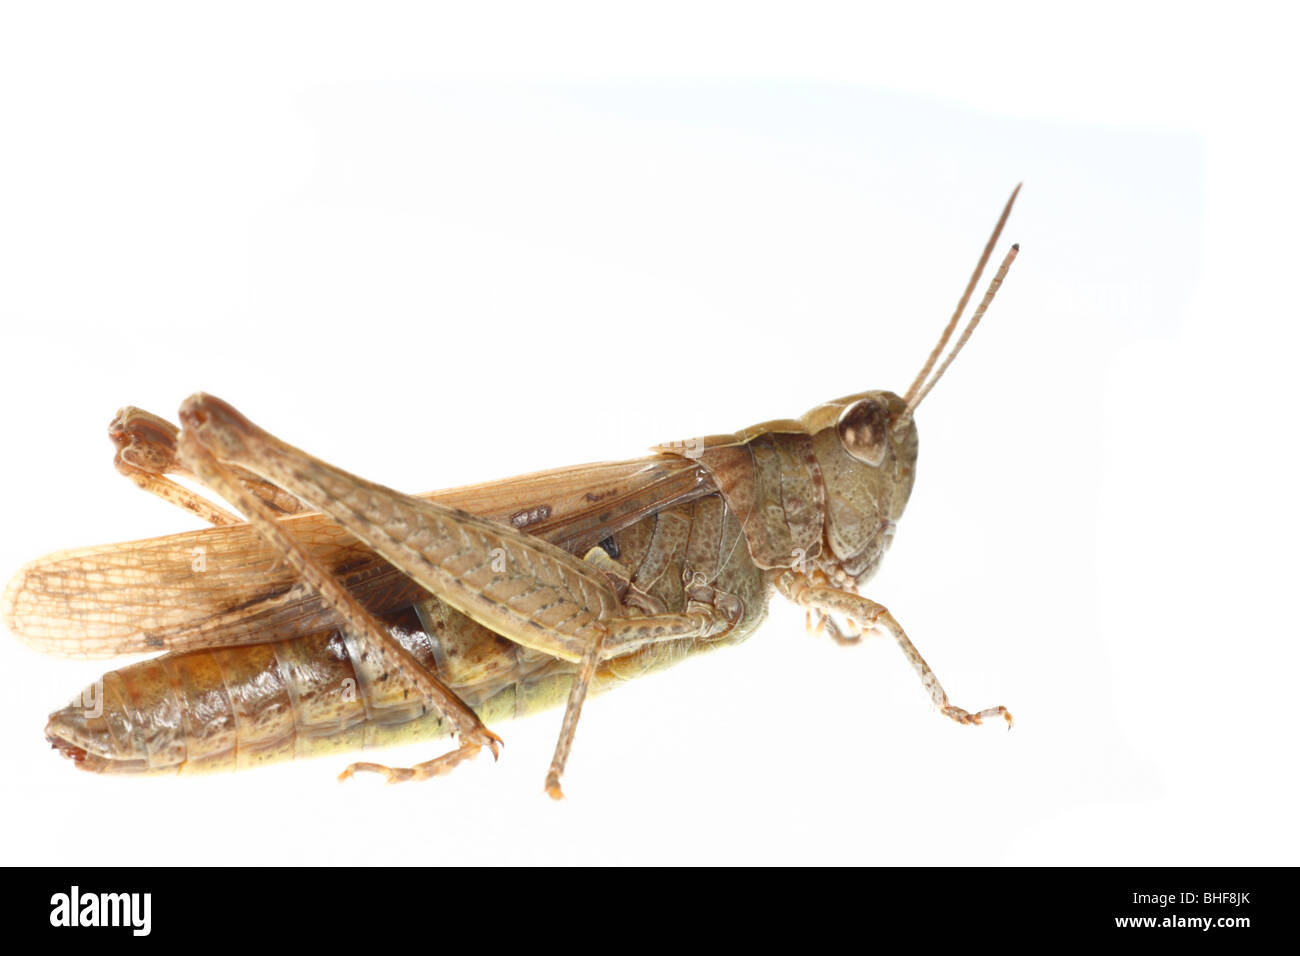 Female Field Grasshopper (Chorthippus brunneus). Live insect photographed against a white background on a portable - Stock Image